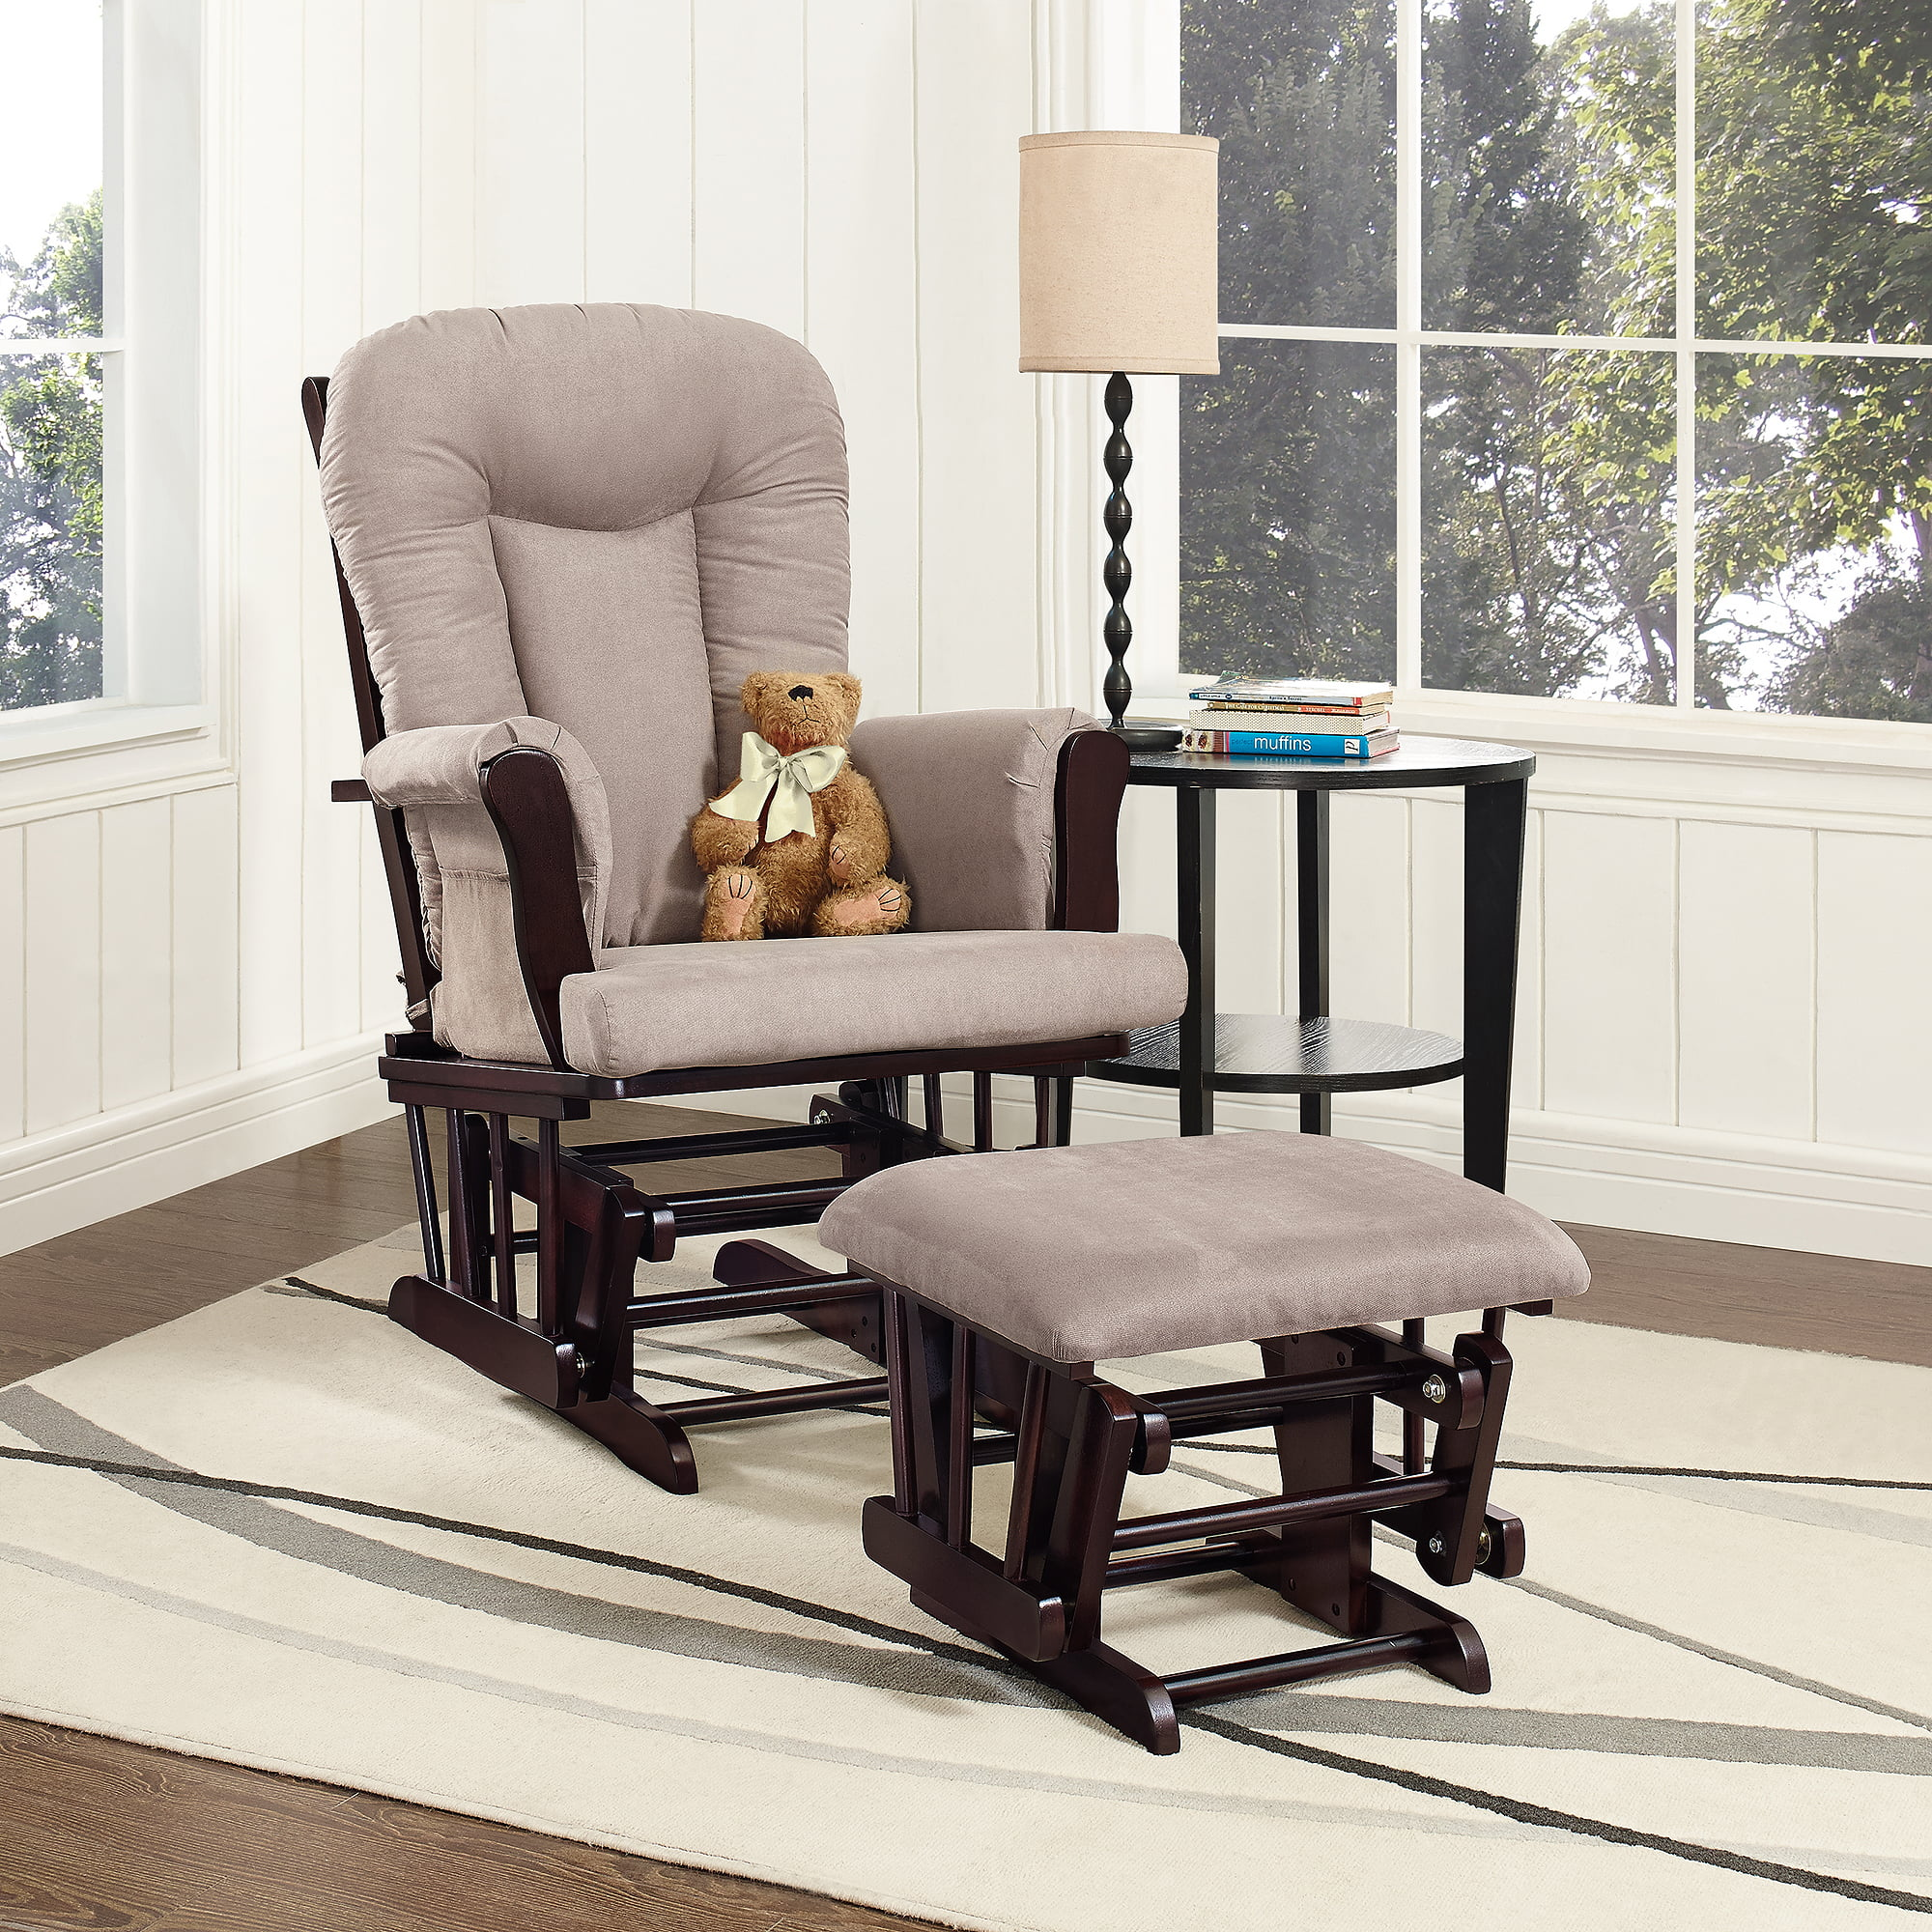 Storkcraft Bowback Glider And Ottoman Espresso With Beige   Walmart.com